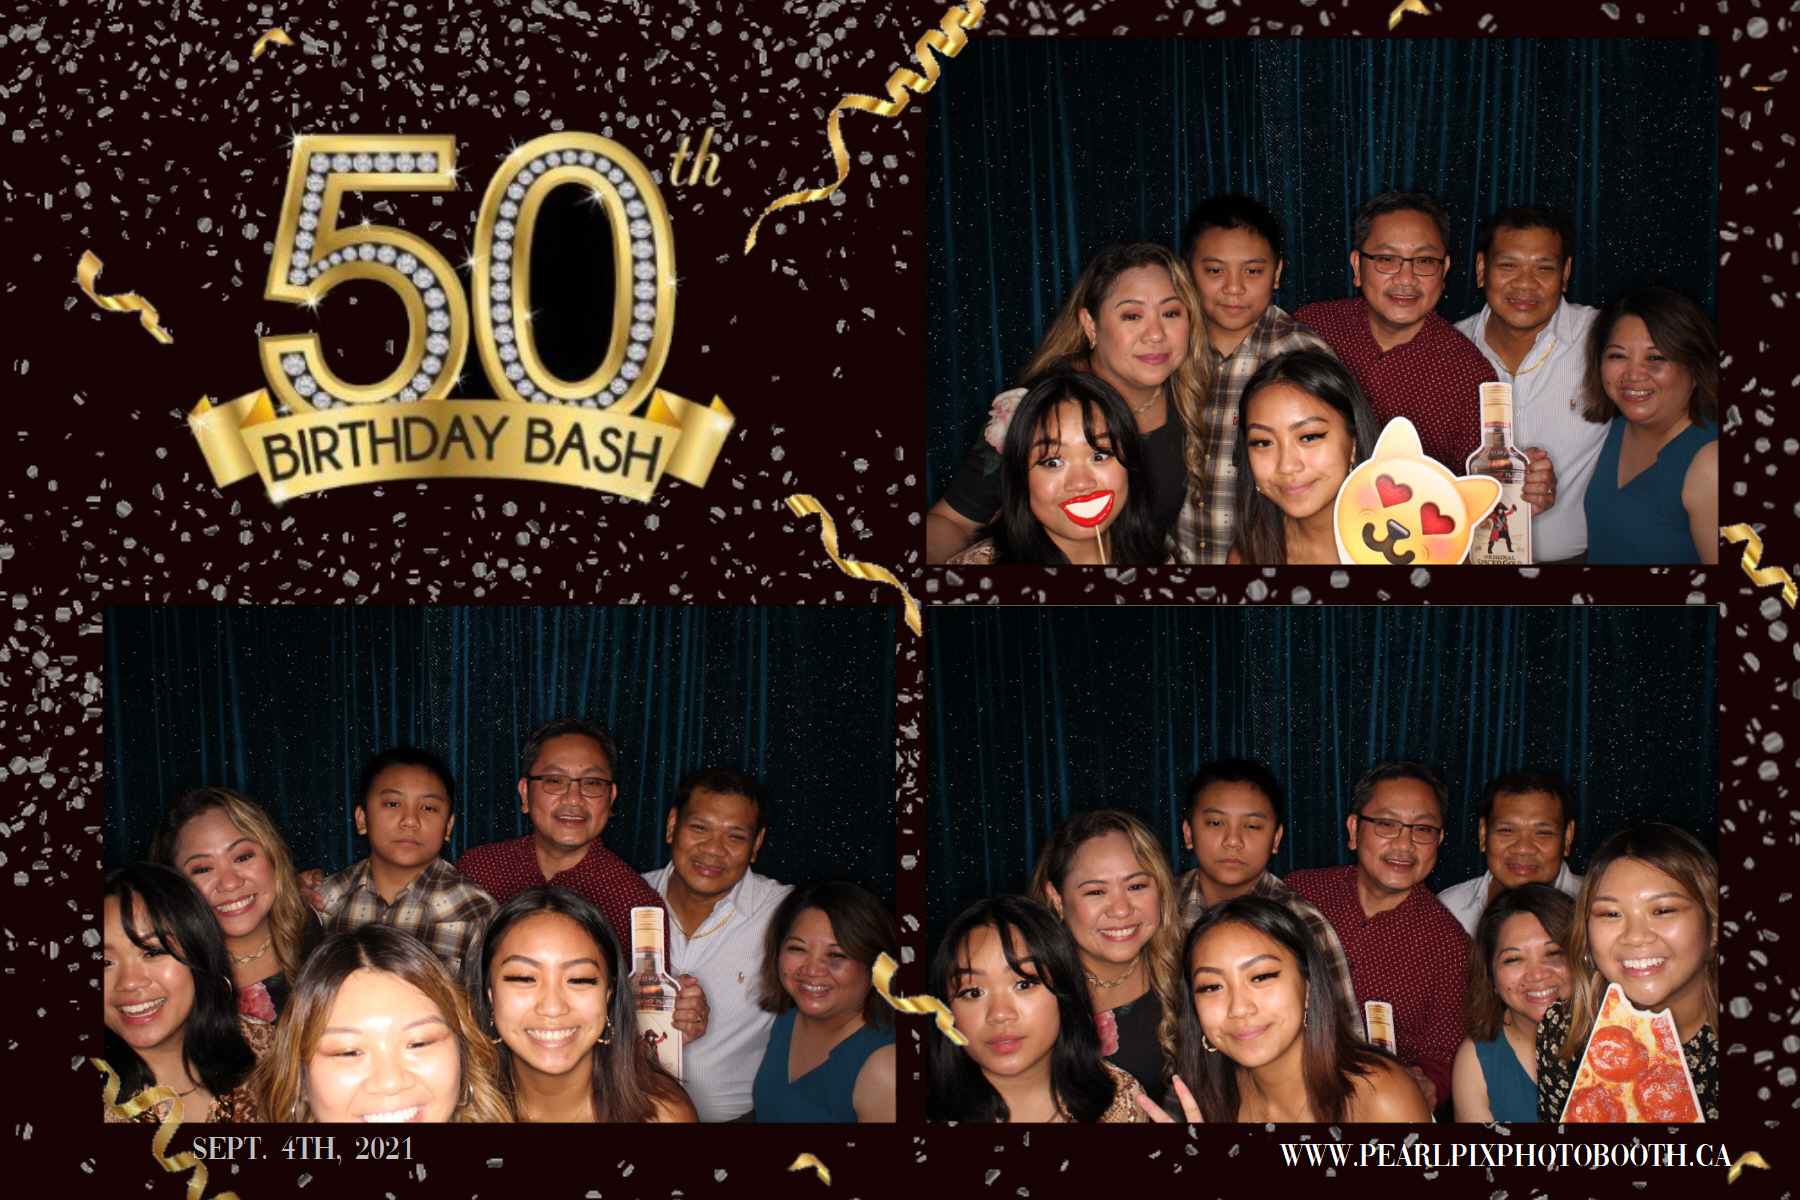 Peter_s 50th Bday_32